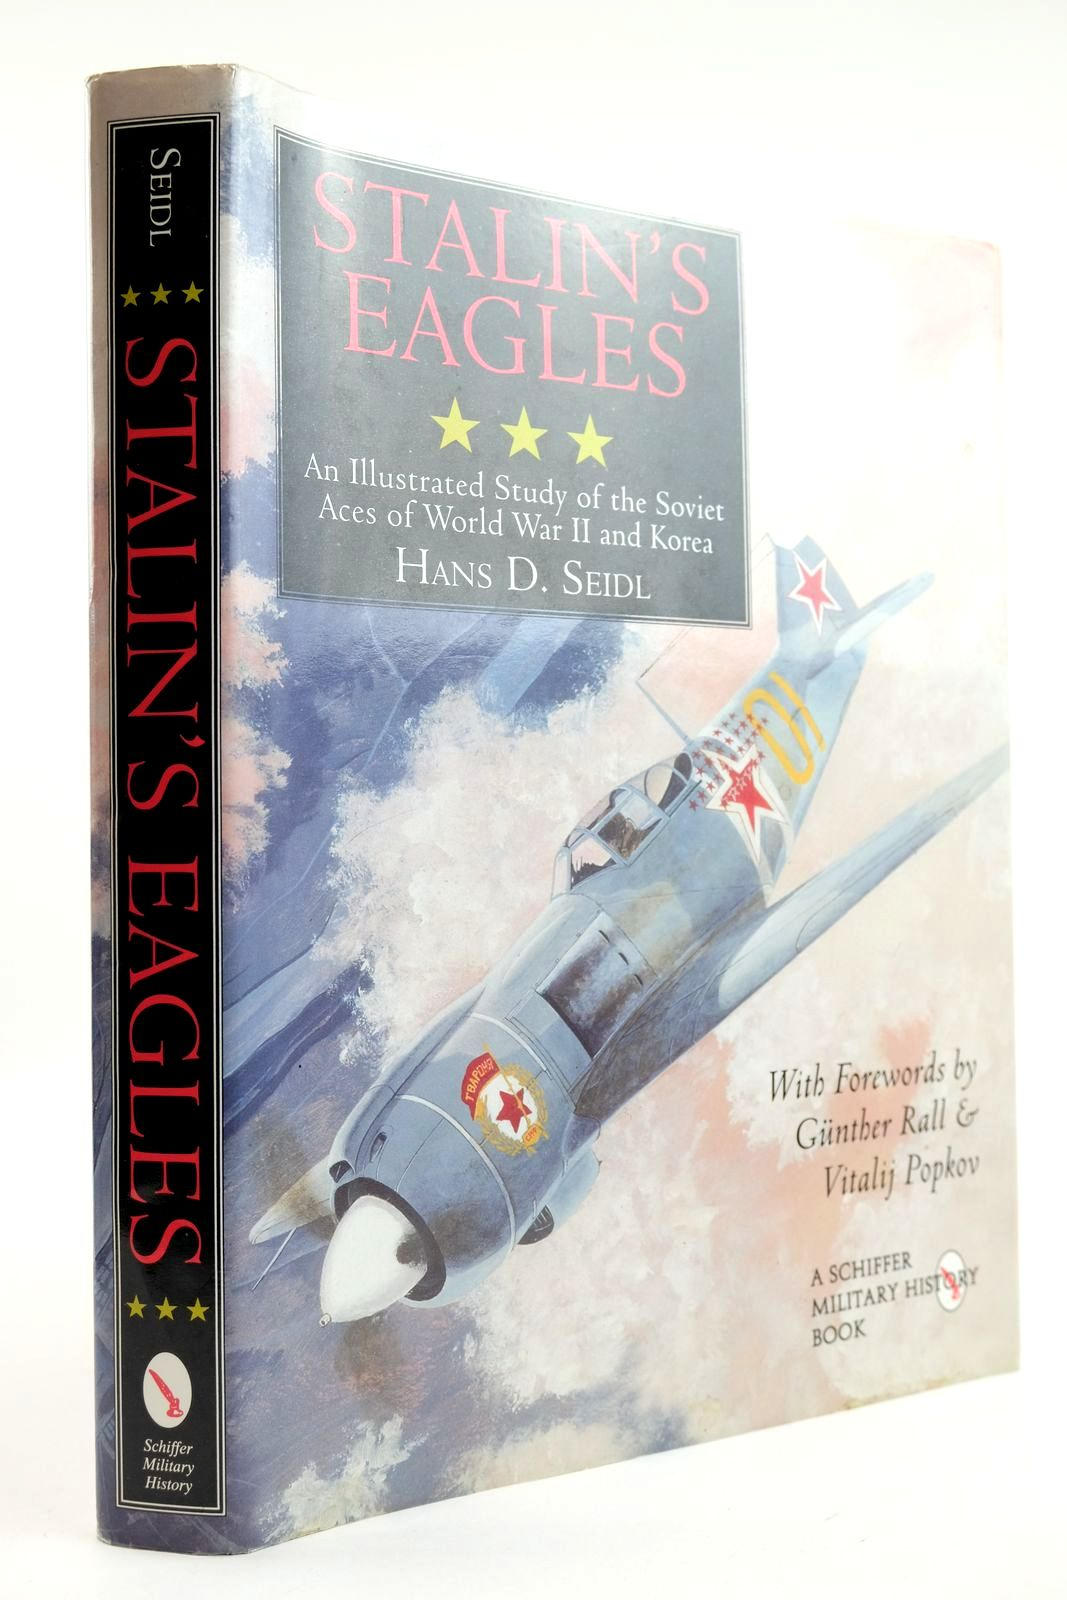 Photo of STALIN'S EAGLES: AN ILLUSTRATED STUDY OF THE SOVIET ACES OF WORLD WAR II AND KOREA written by Seidl, Hans D. published by Schiffer Military History (STOCK CODE: 2132228)  for sale by Stella & Rose's Books